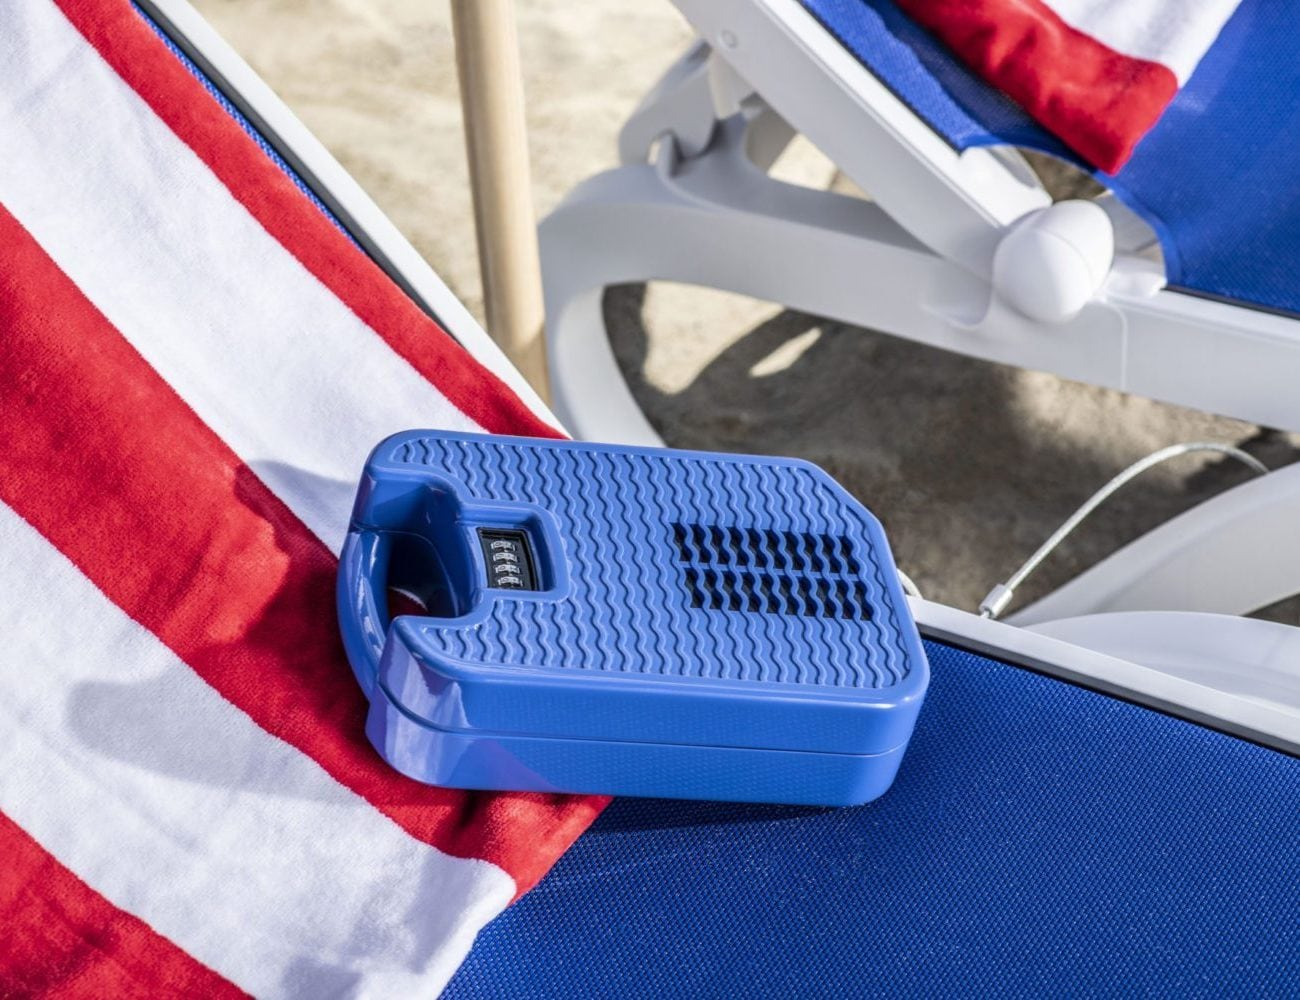 beachsafe Personal Self-Cooling Safe keeps your devices safe in public